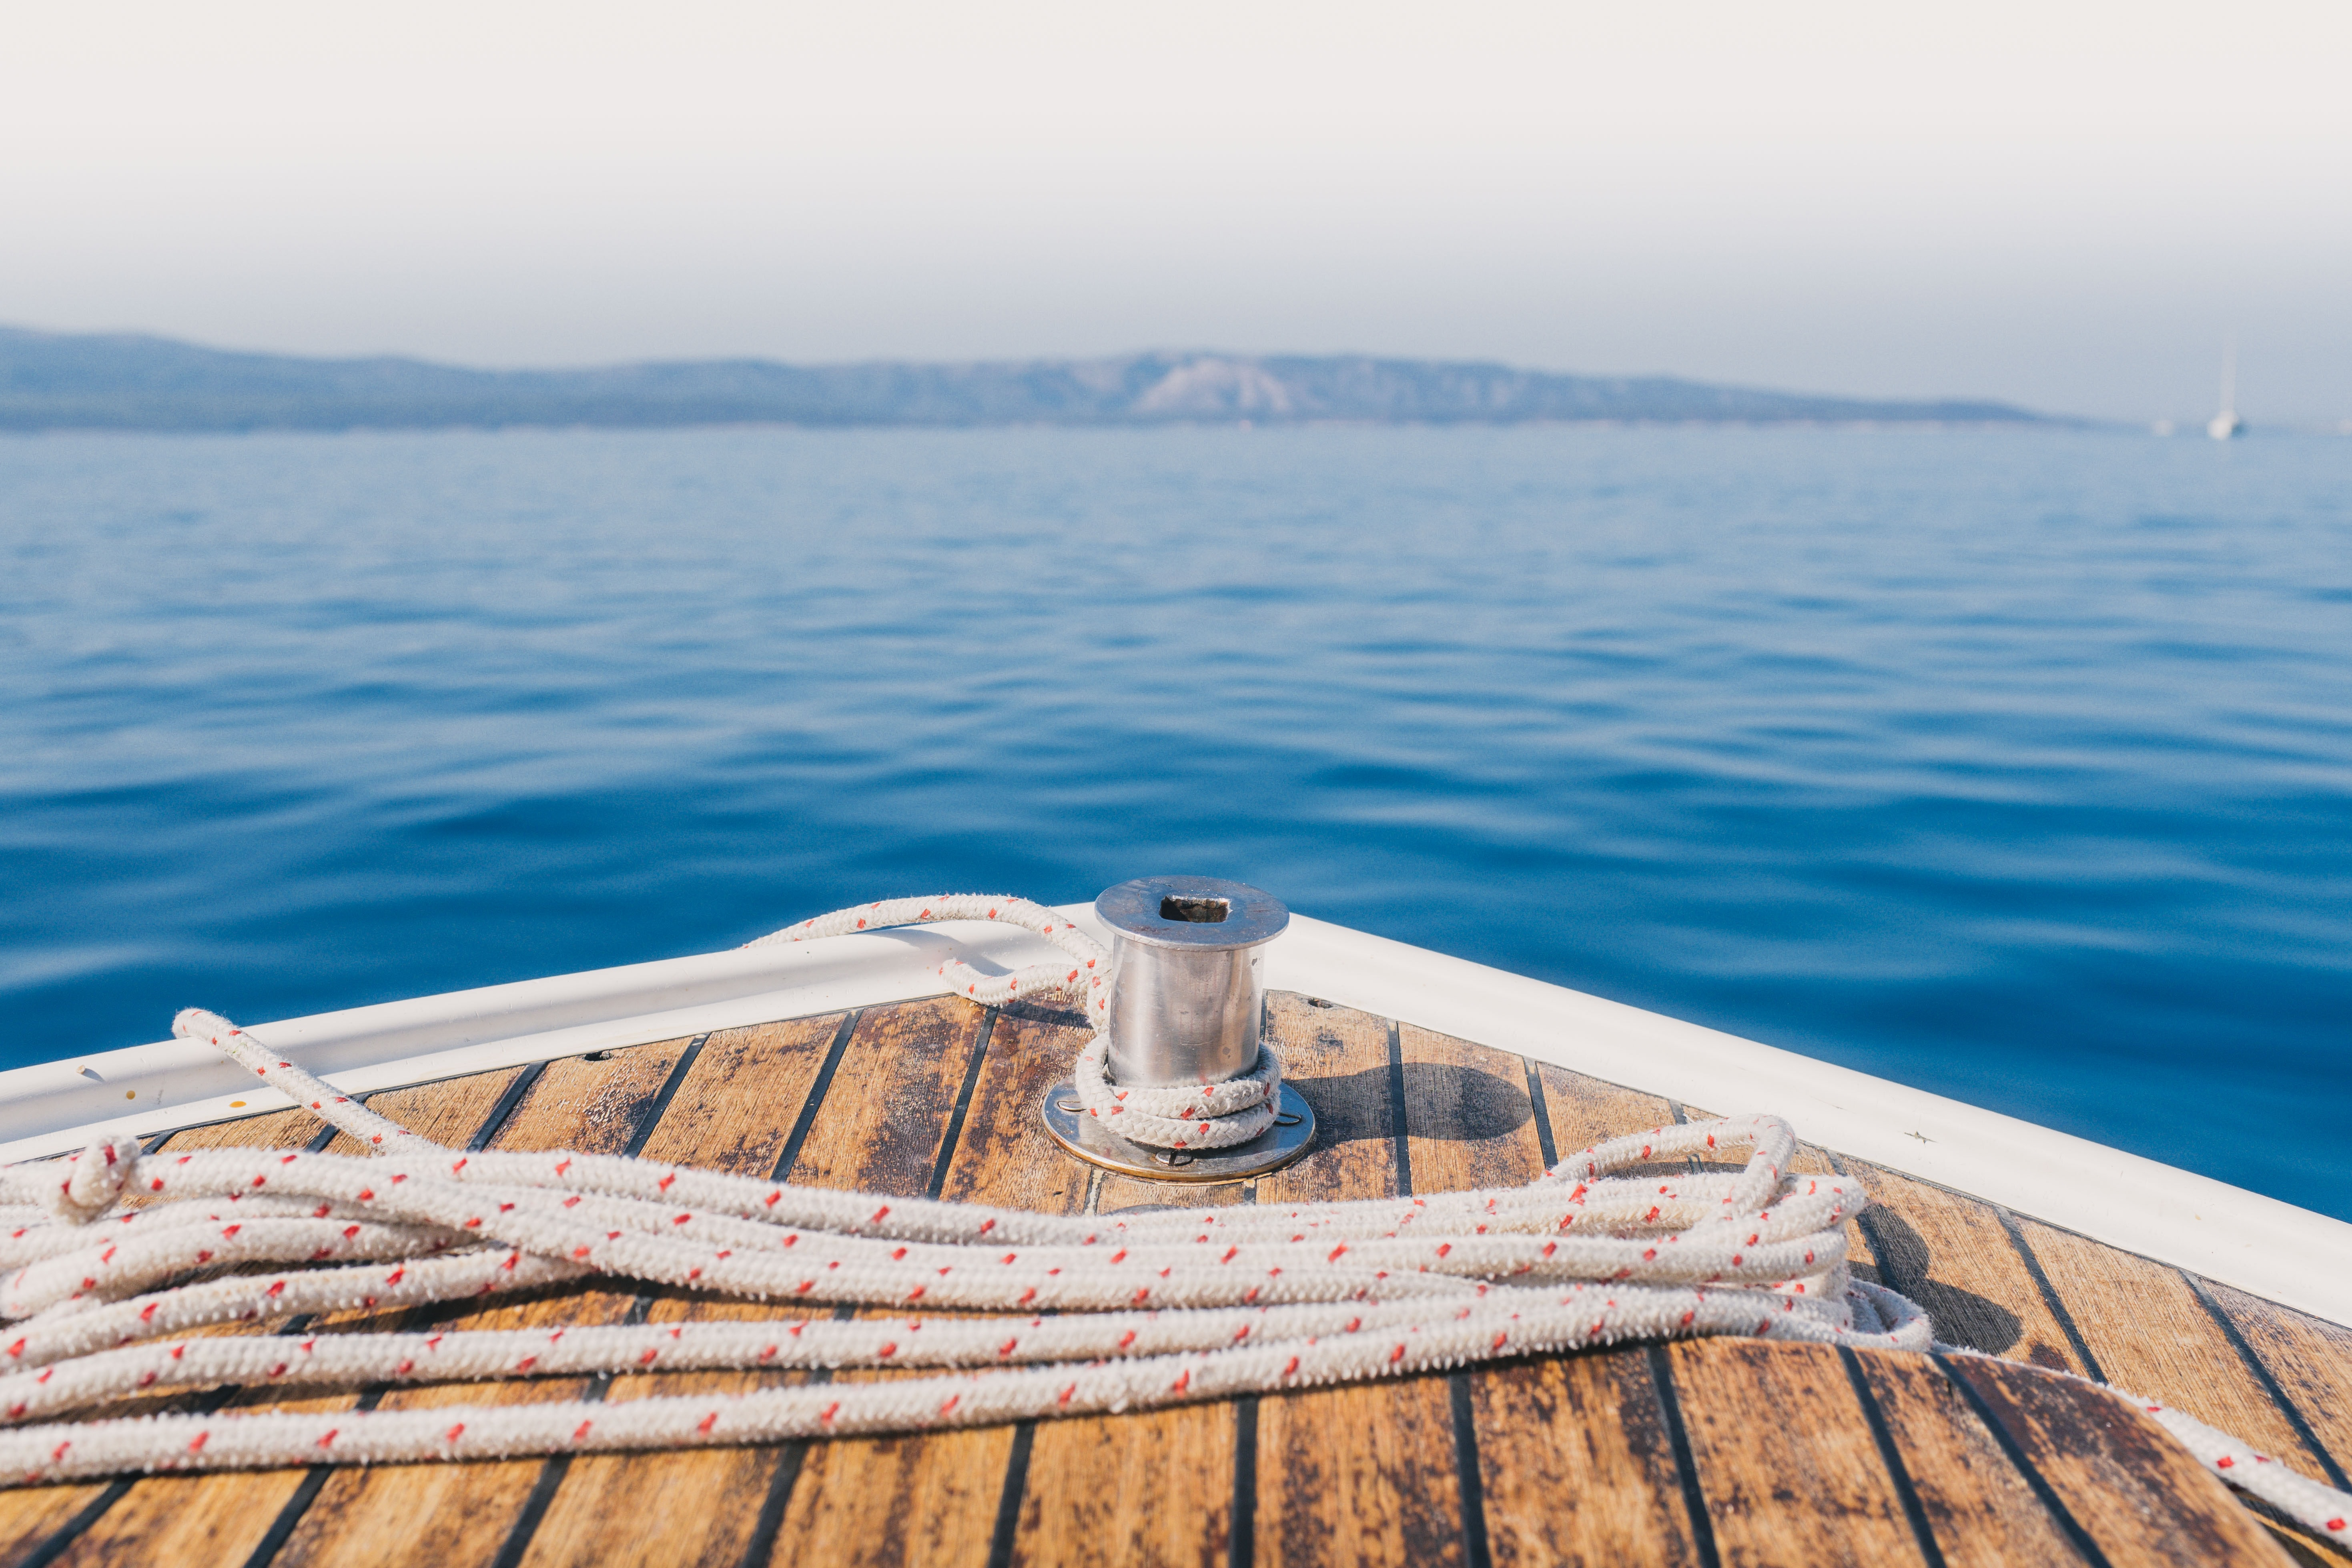 shallow focus photography of road on boat